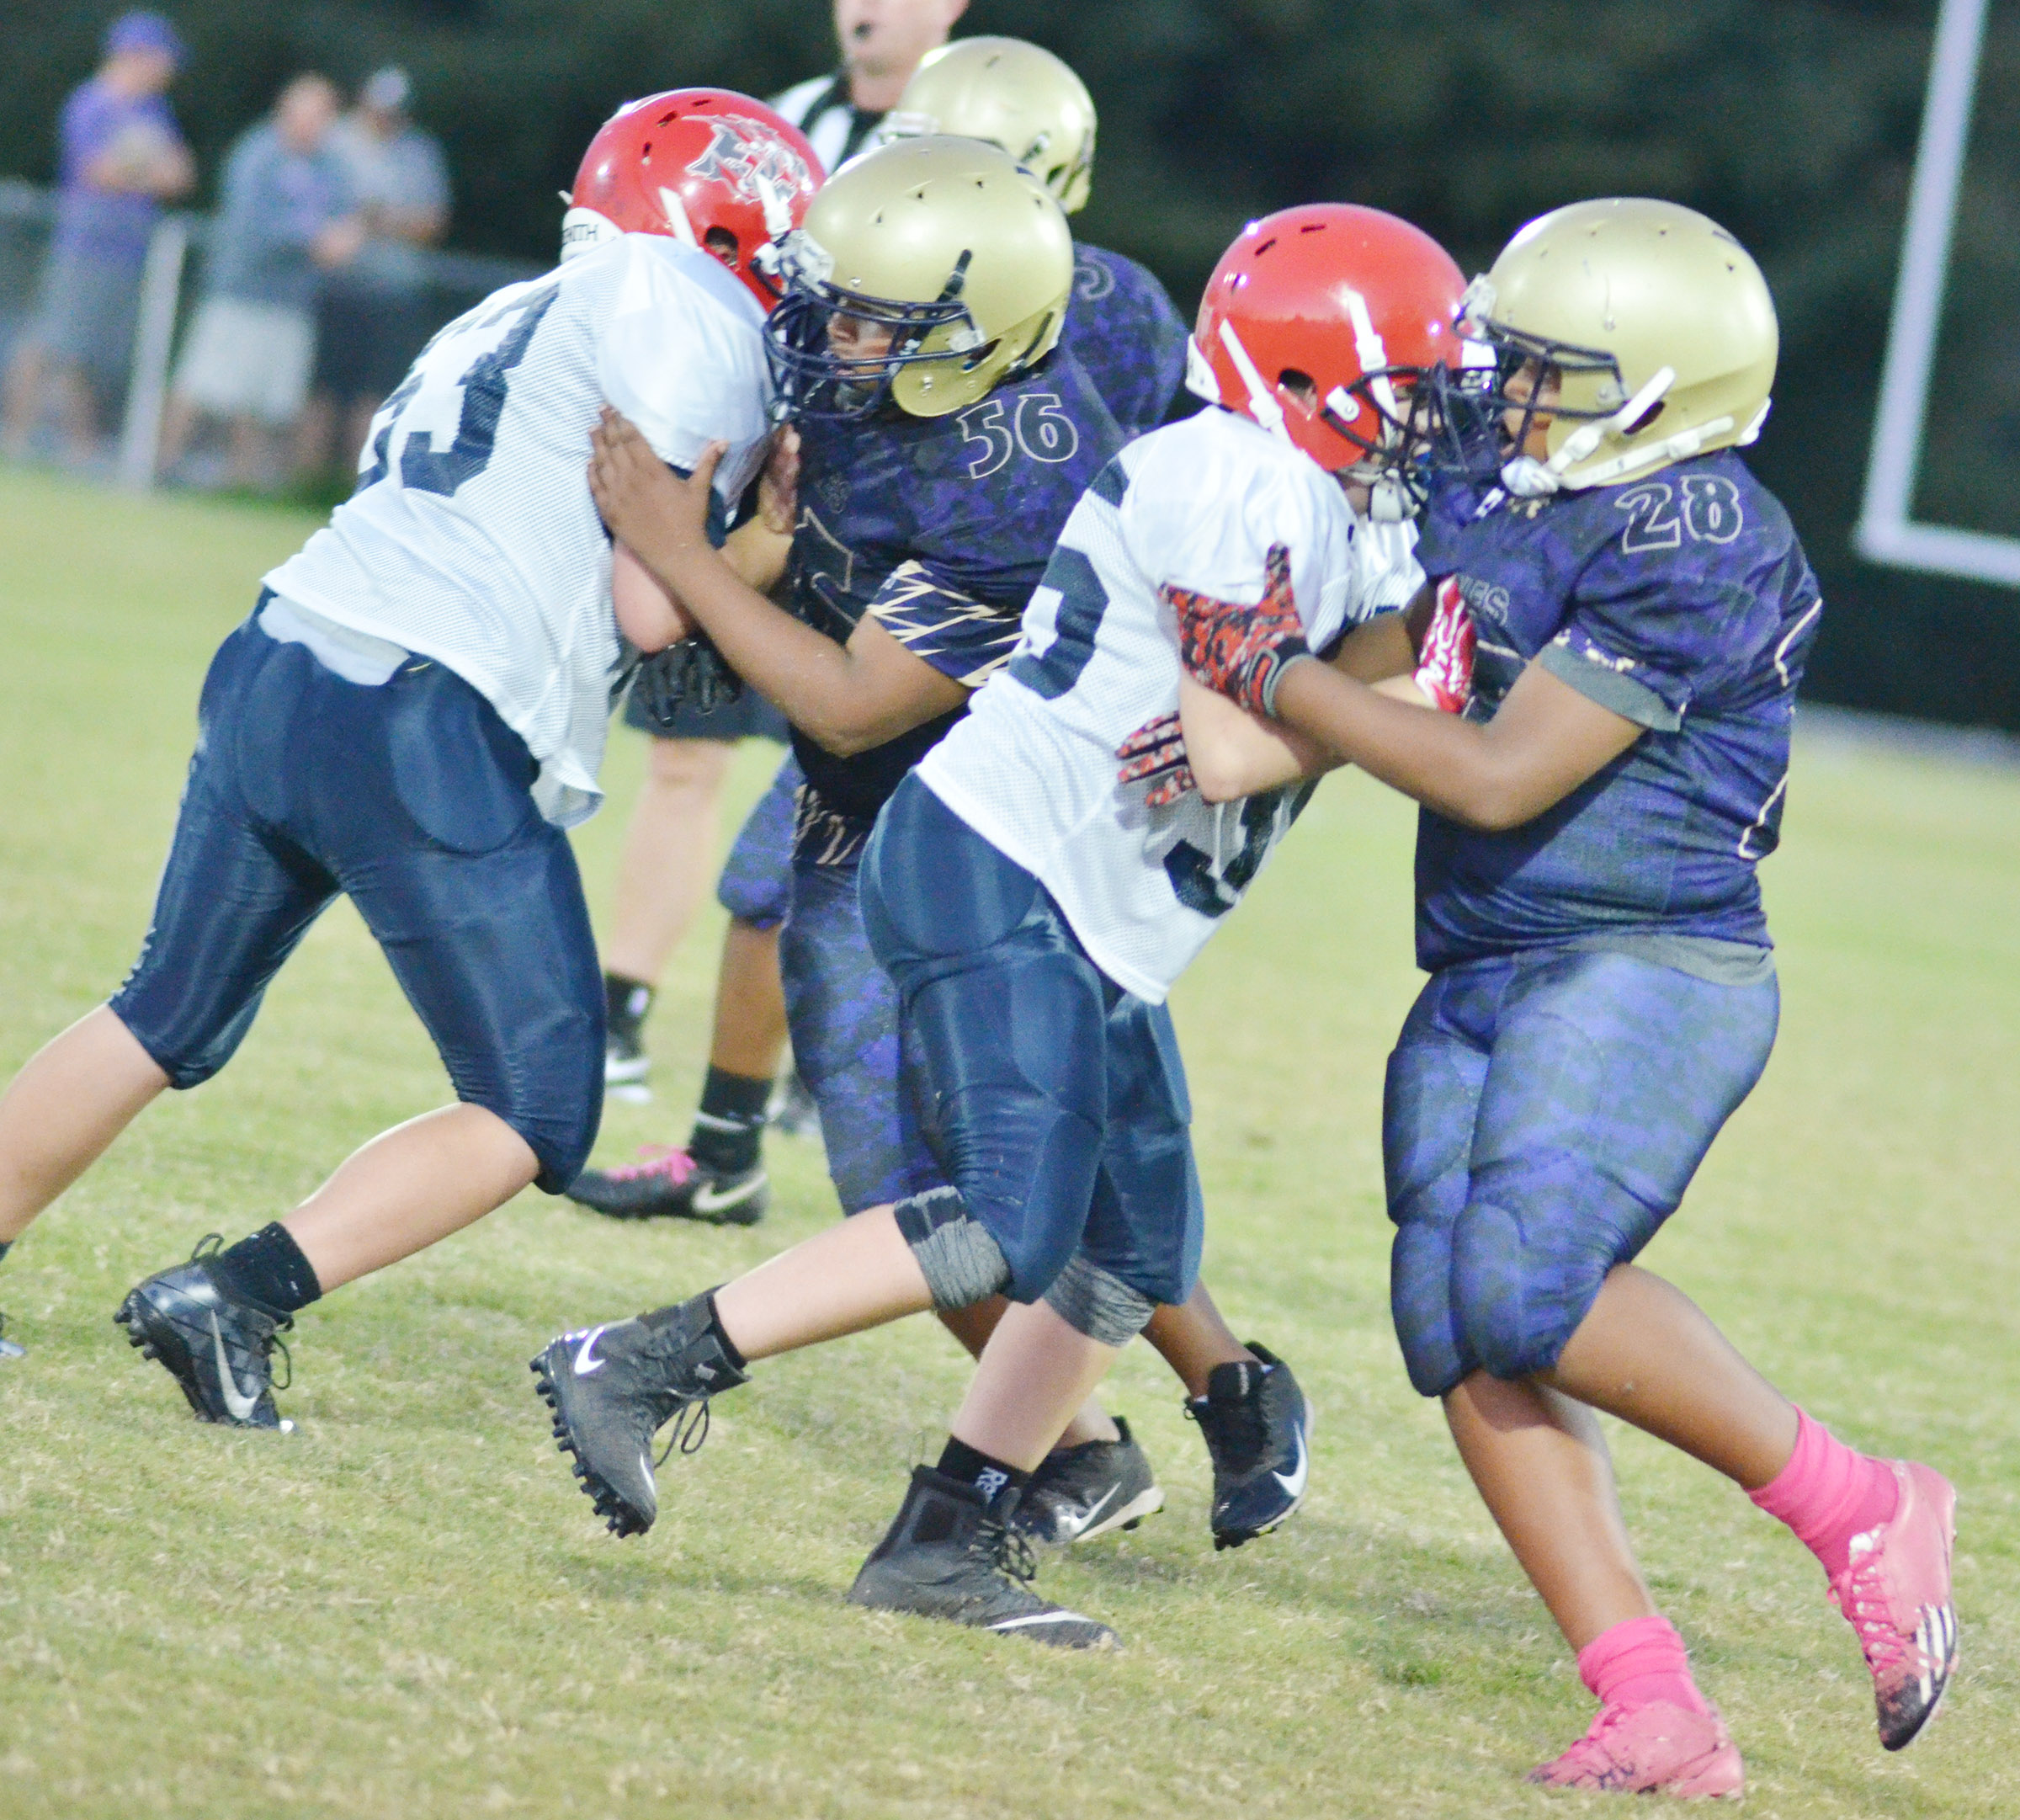 CMS seventh-grader Keondre Weathers, at right, and his teammates tackle.